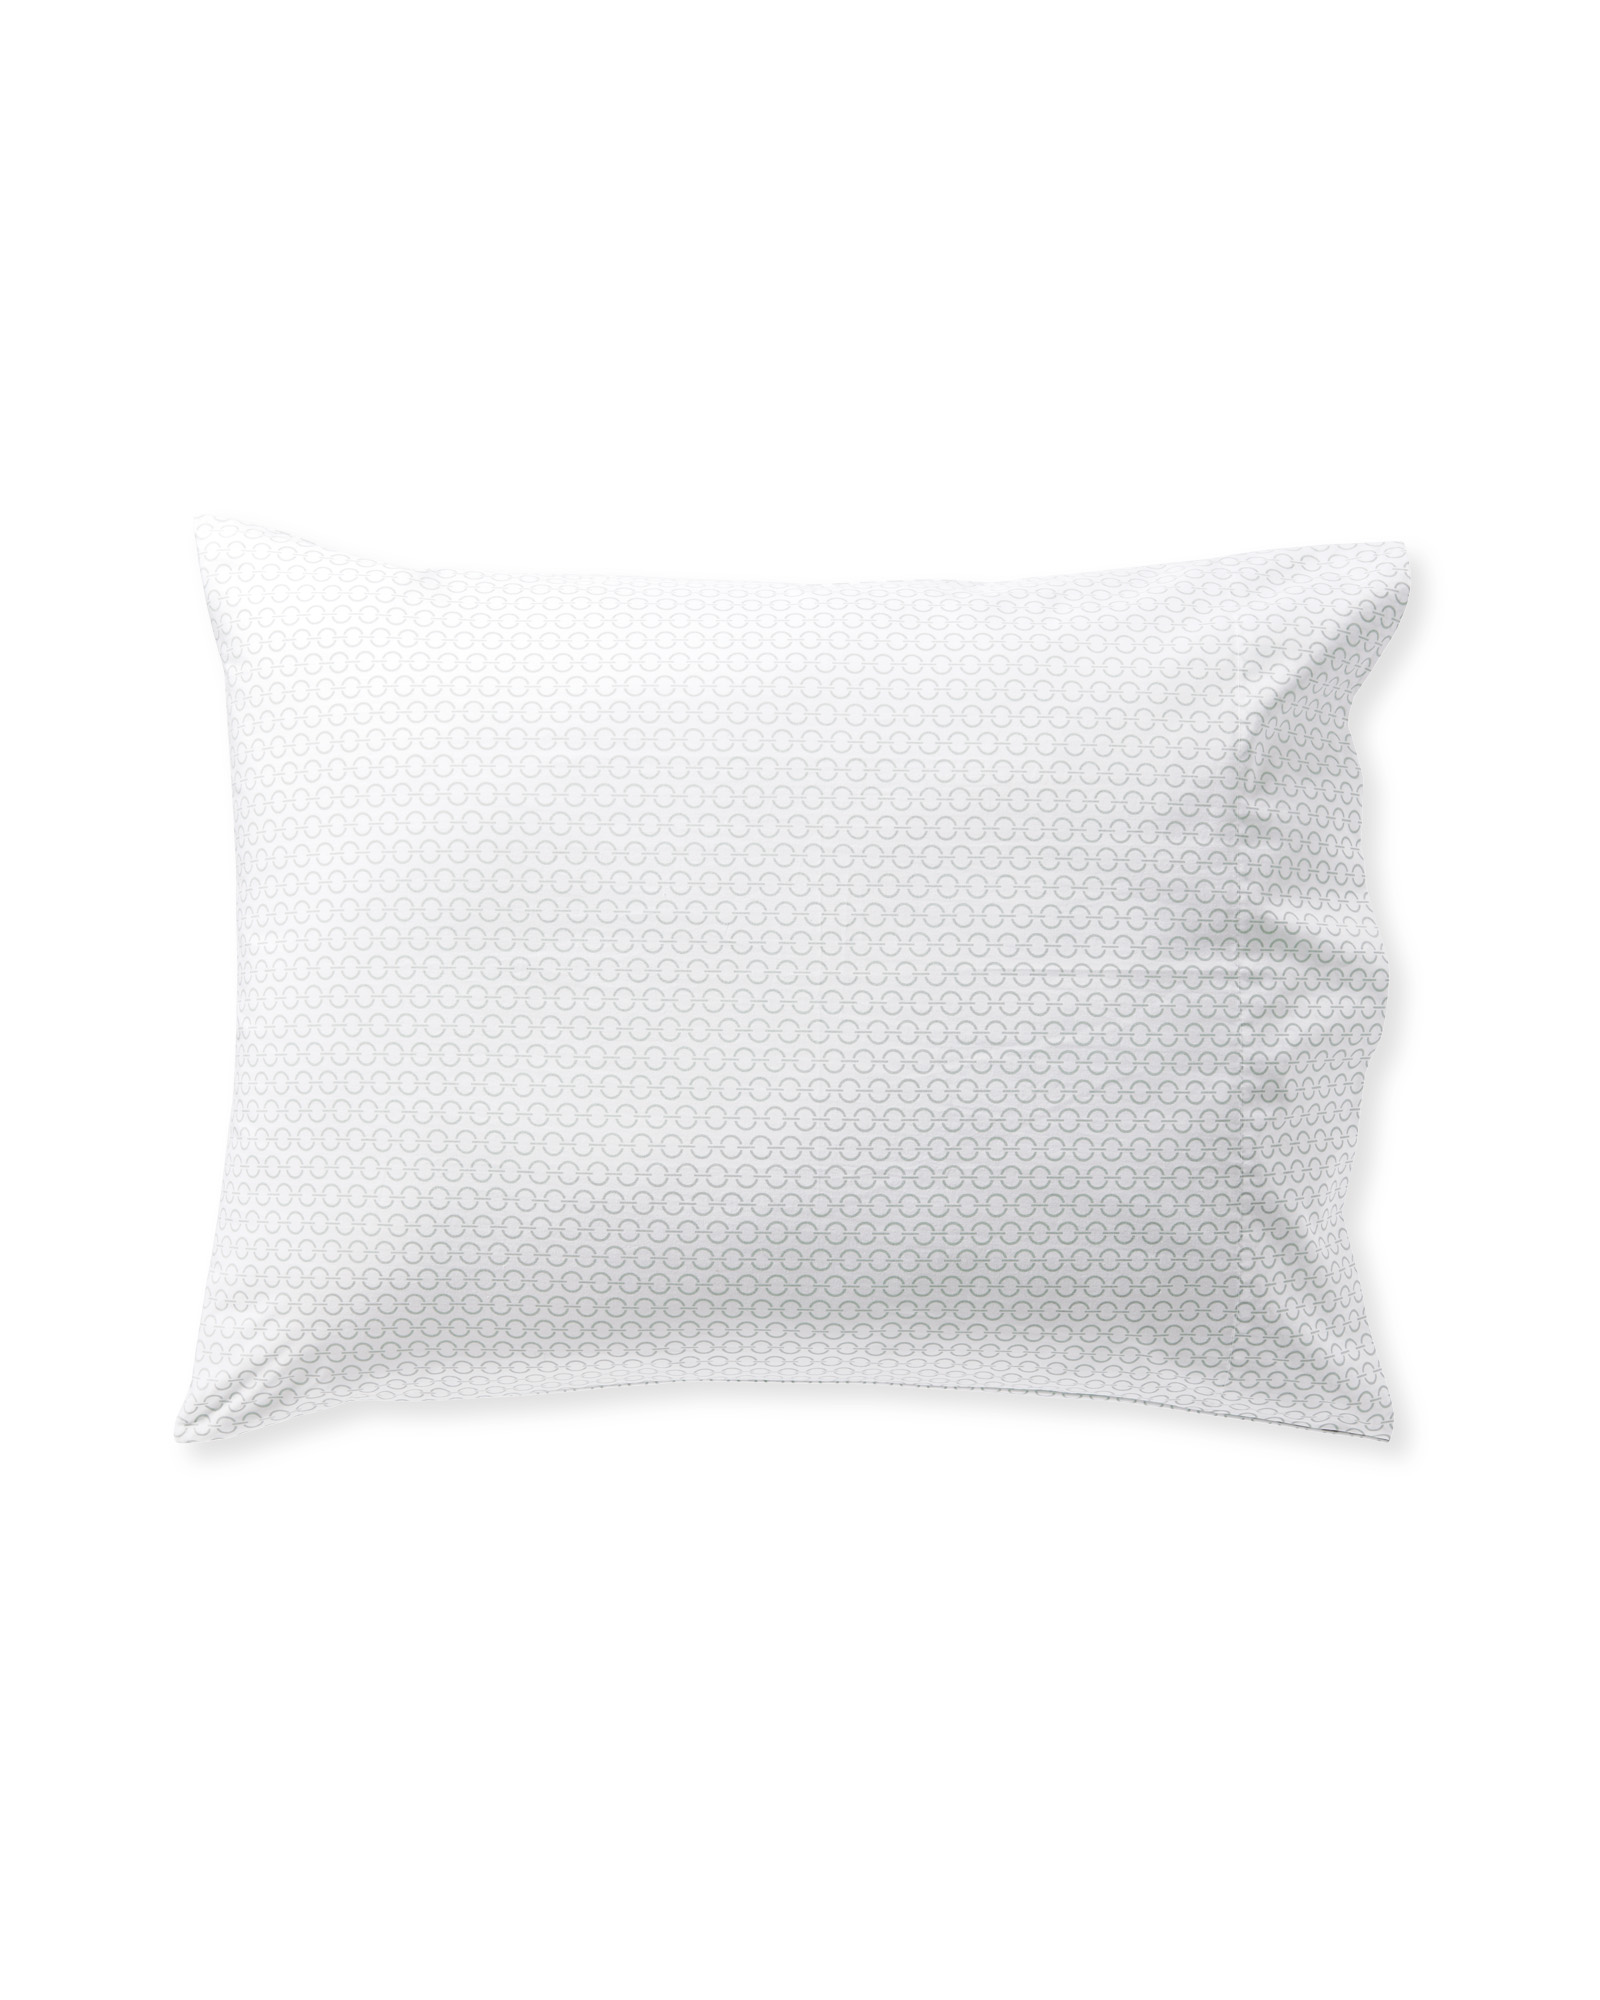 Classic Ring Pillowcases (Set of 2), Eucalyptus